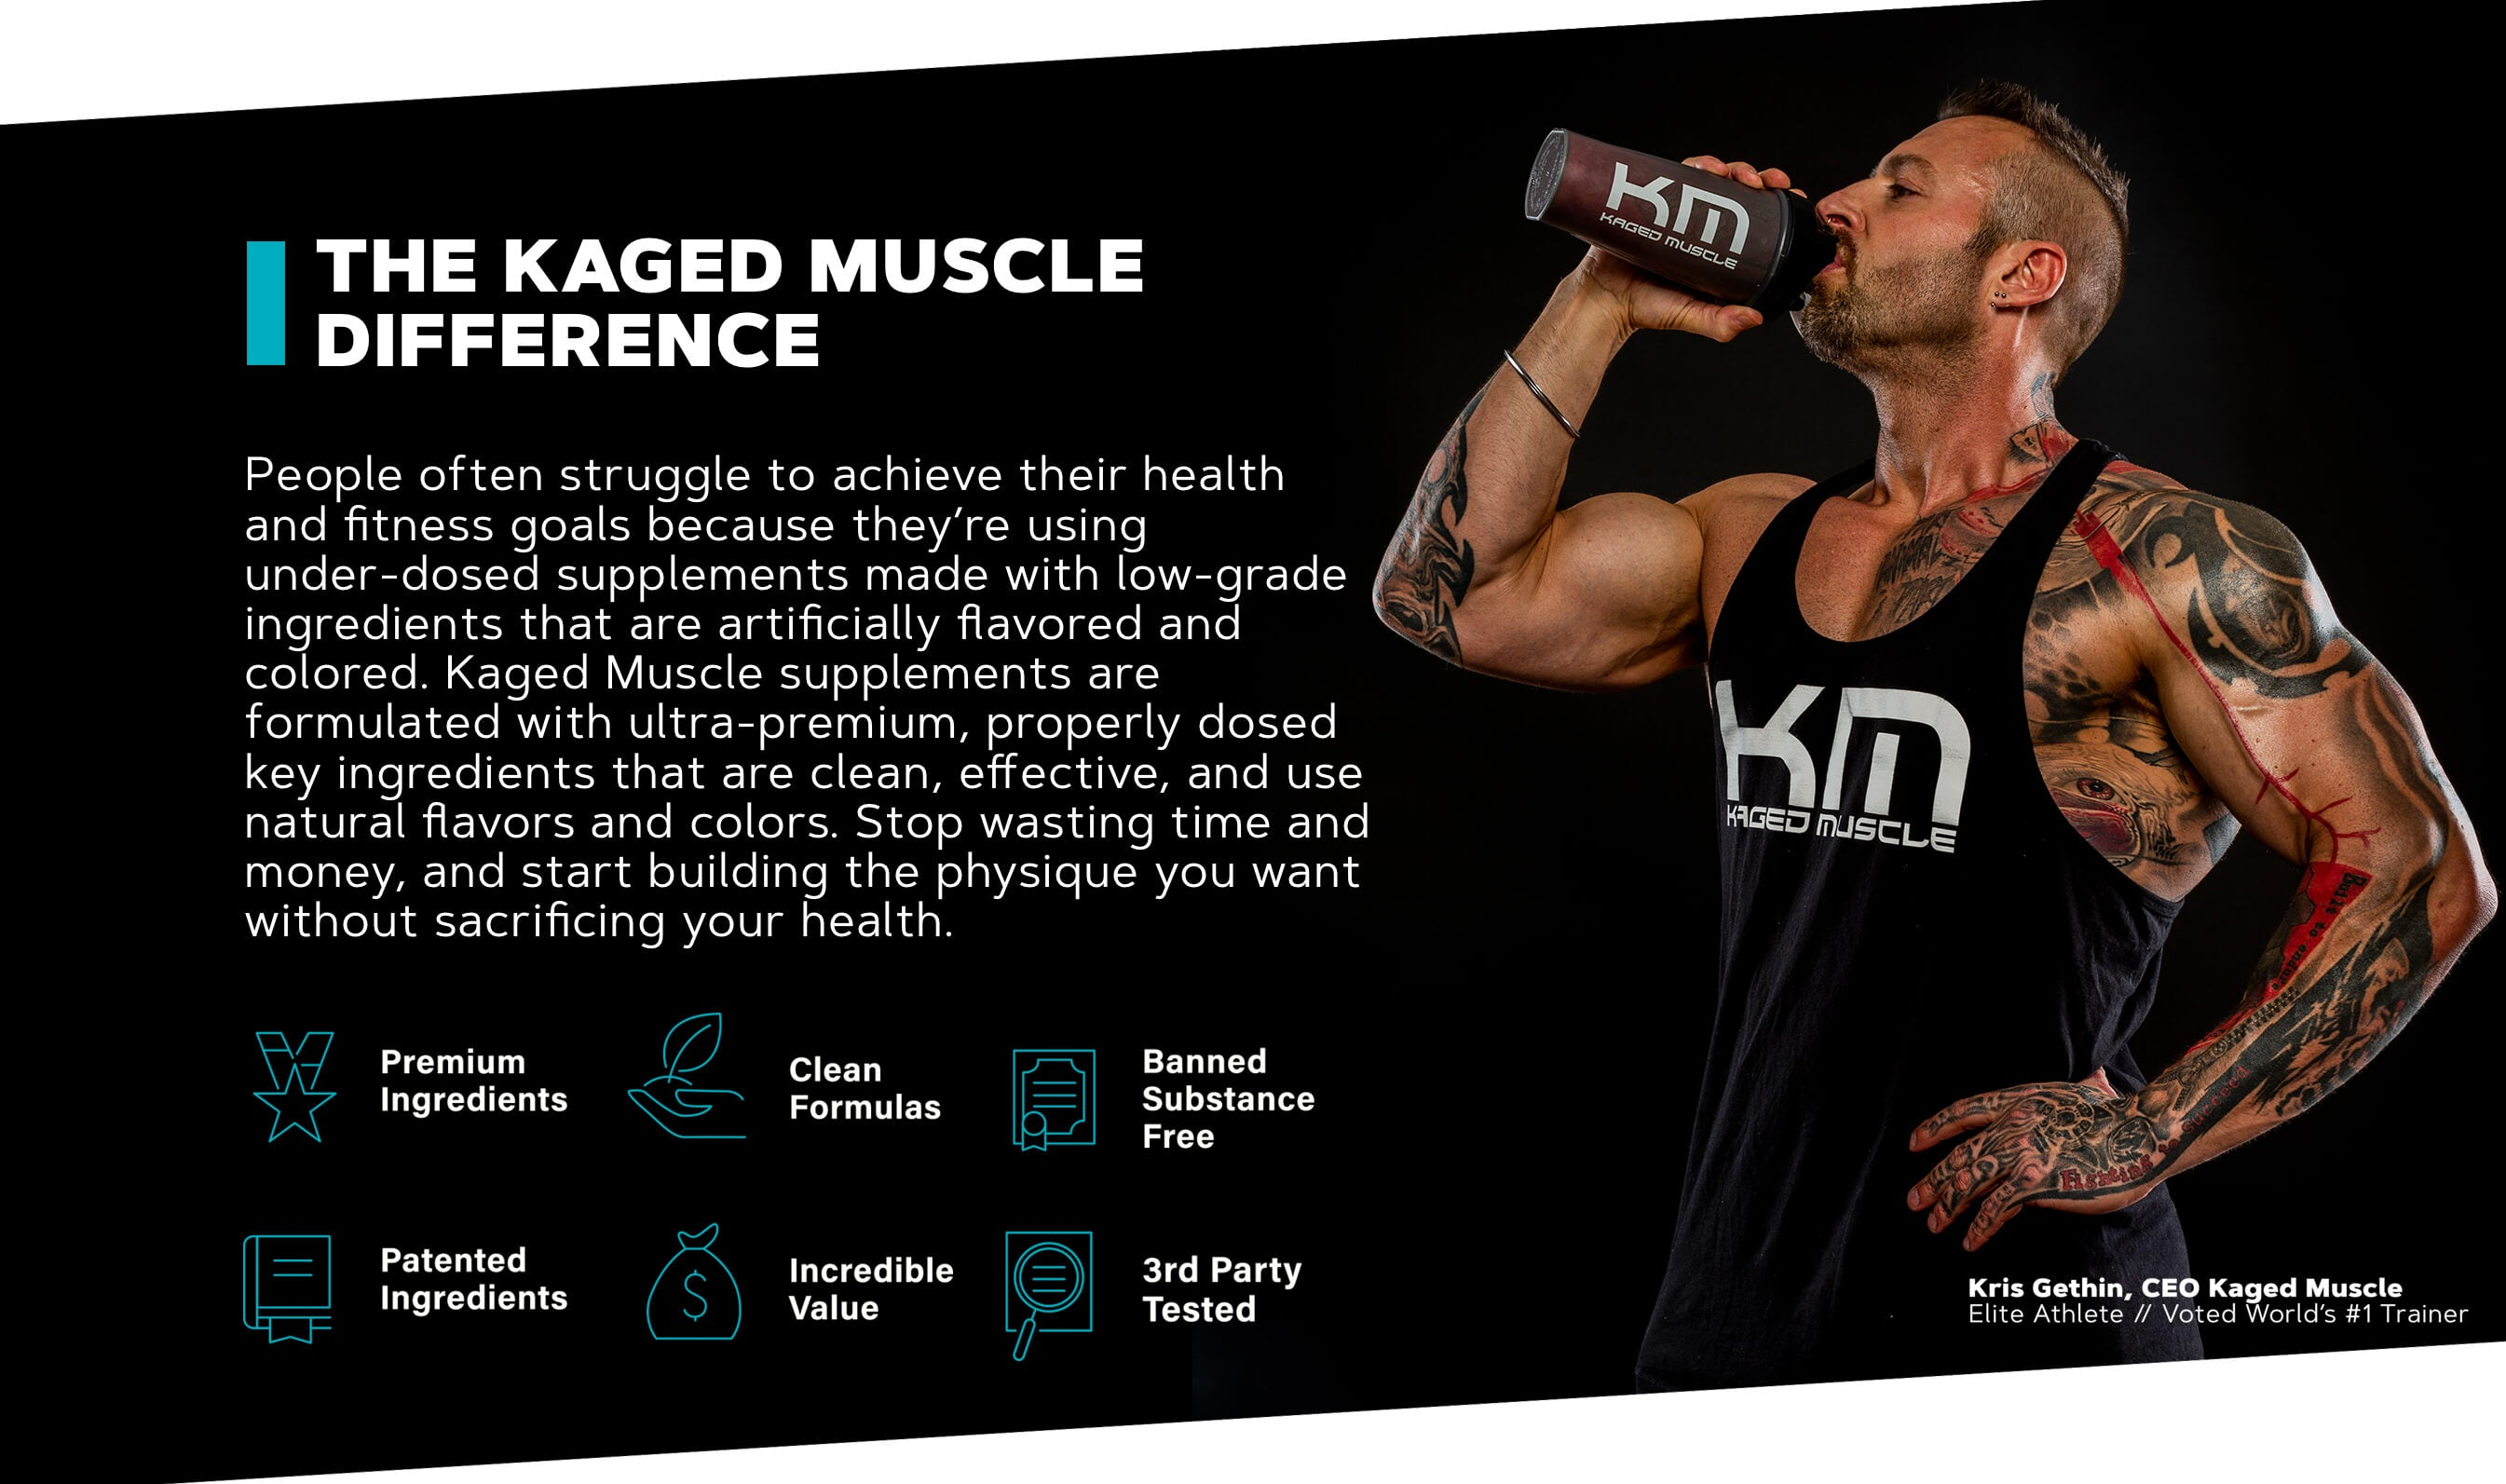 """BENEFIT OVERVIEW:   Improves Post-Workout Recovery  Supports Protein Synthesis Fuels Healthy Immune Function 100% Plant-Based + Vegan Third-Party Tested No Artificial Colors or Flavors   PATENTED MICROENCAPSULATION TECHNOLOGY  Utilizing a cutting edge patented technology, Microencapsulated Glutamine delivers ultra-pure glutamine coated in a unique plant-based protein matrix. This coating acts like a barrier protecting the glutamine through the digestion process, dramatically enhancing absorption and utilization in the gut.*  THE SHOCKING TRUTH ABOUT MOST GLUTAMINE Most companies get their glutamine from bird feathers, animal fur, or human hair, then use a harsh chemical process (hydrolyzation) to extract it. It's this animal byproduct that you're consuming to """"support"""" your health and fitness.   We use an industry-leading fermentation process, and extract our vegan glutamine from 100% plant-based sources. The result is a clean, scientifically advanced glutamine powder you can trust to help you replenish, recover, and rebuild."""